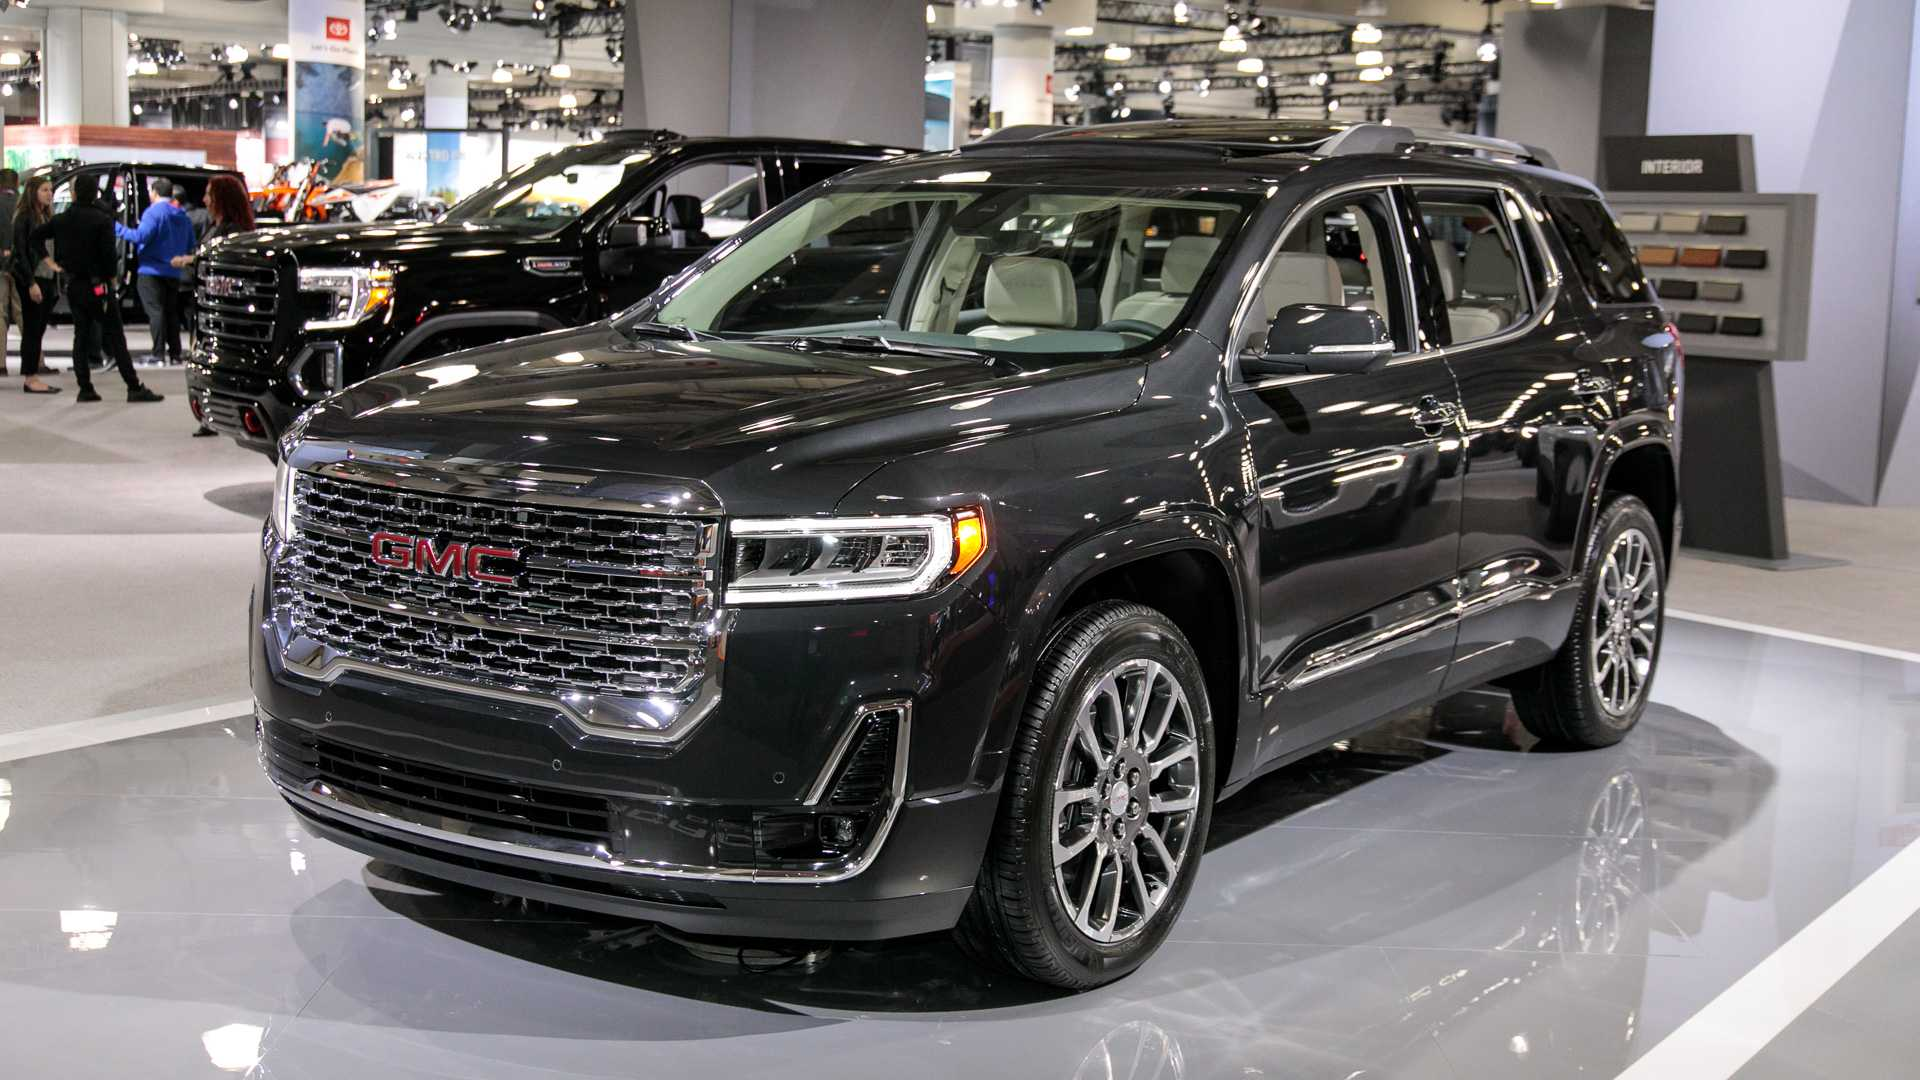 64 New GMC Acadia 2020 Release Date Images